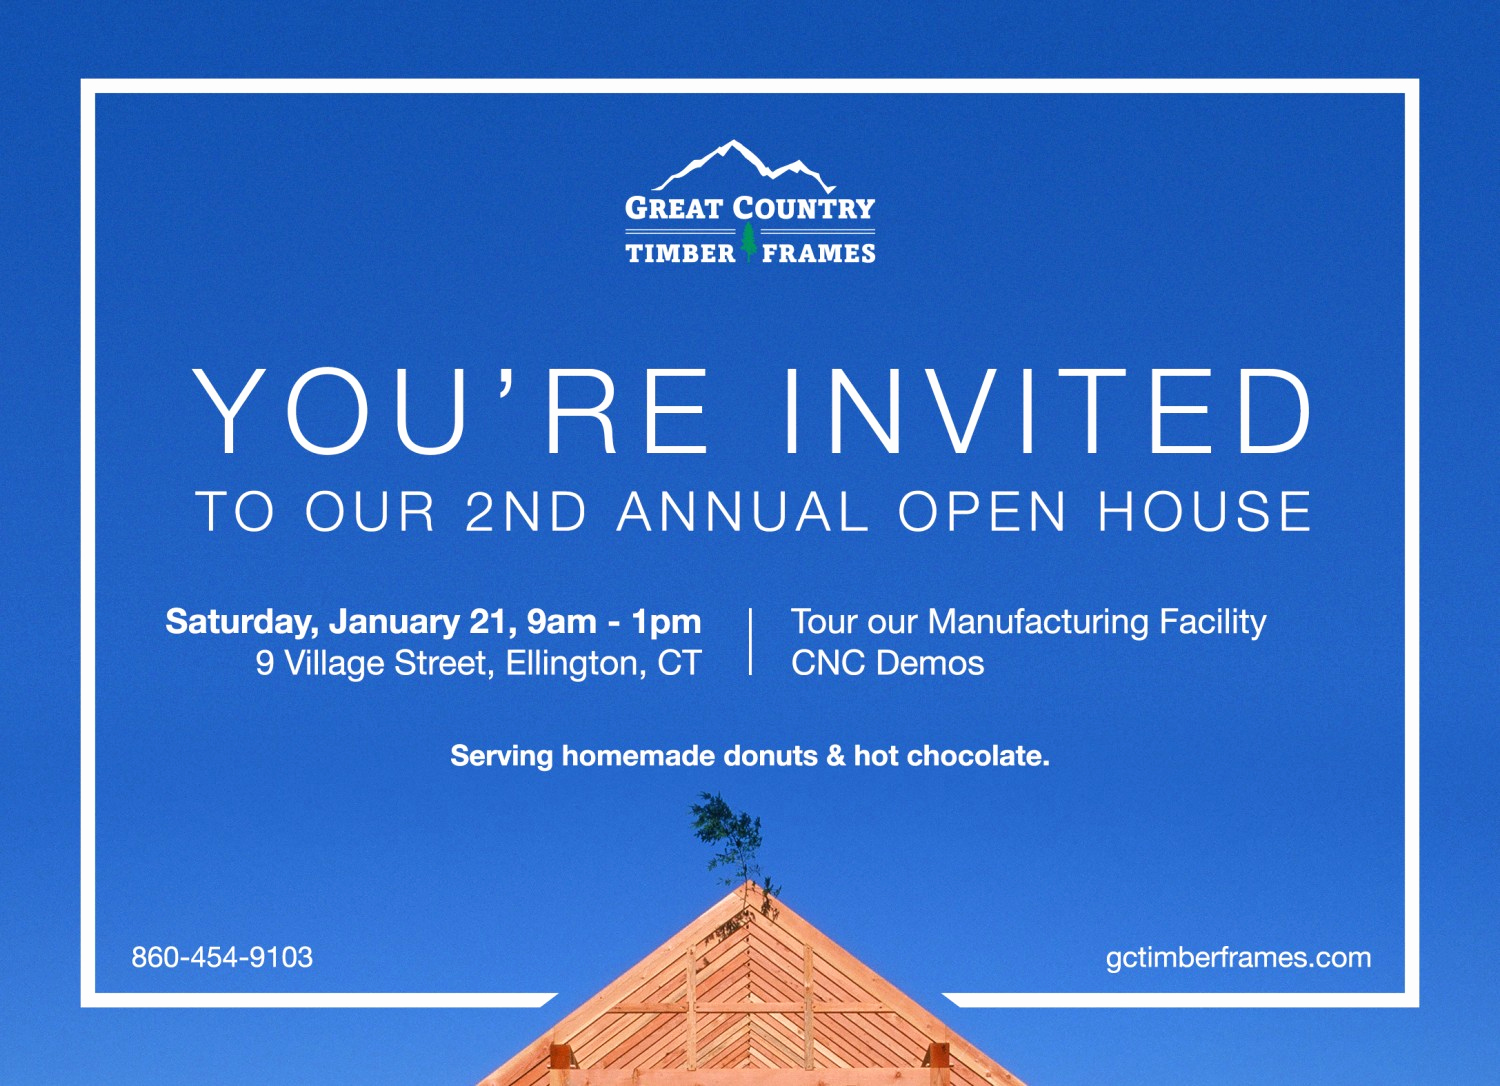 Company Open House Invitation Fresh Open House January 21 the Barn Yard & Great Country Garages